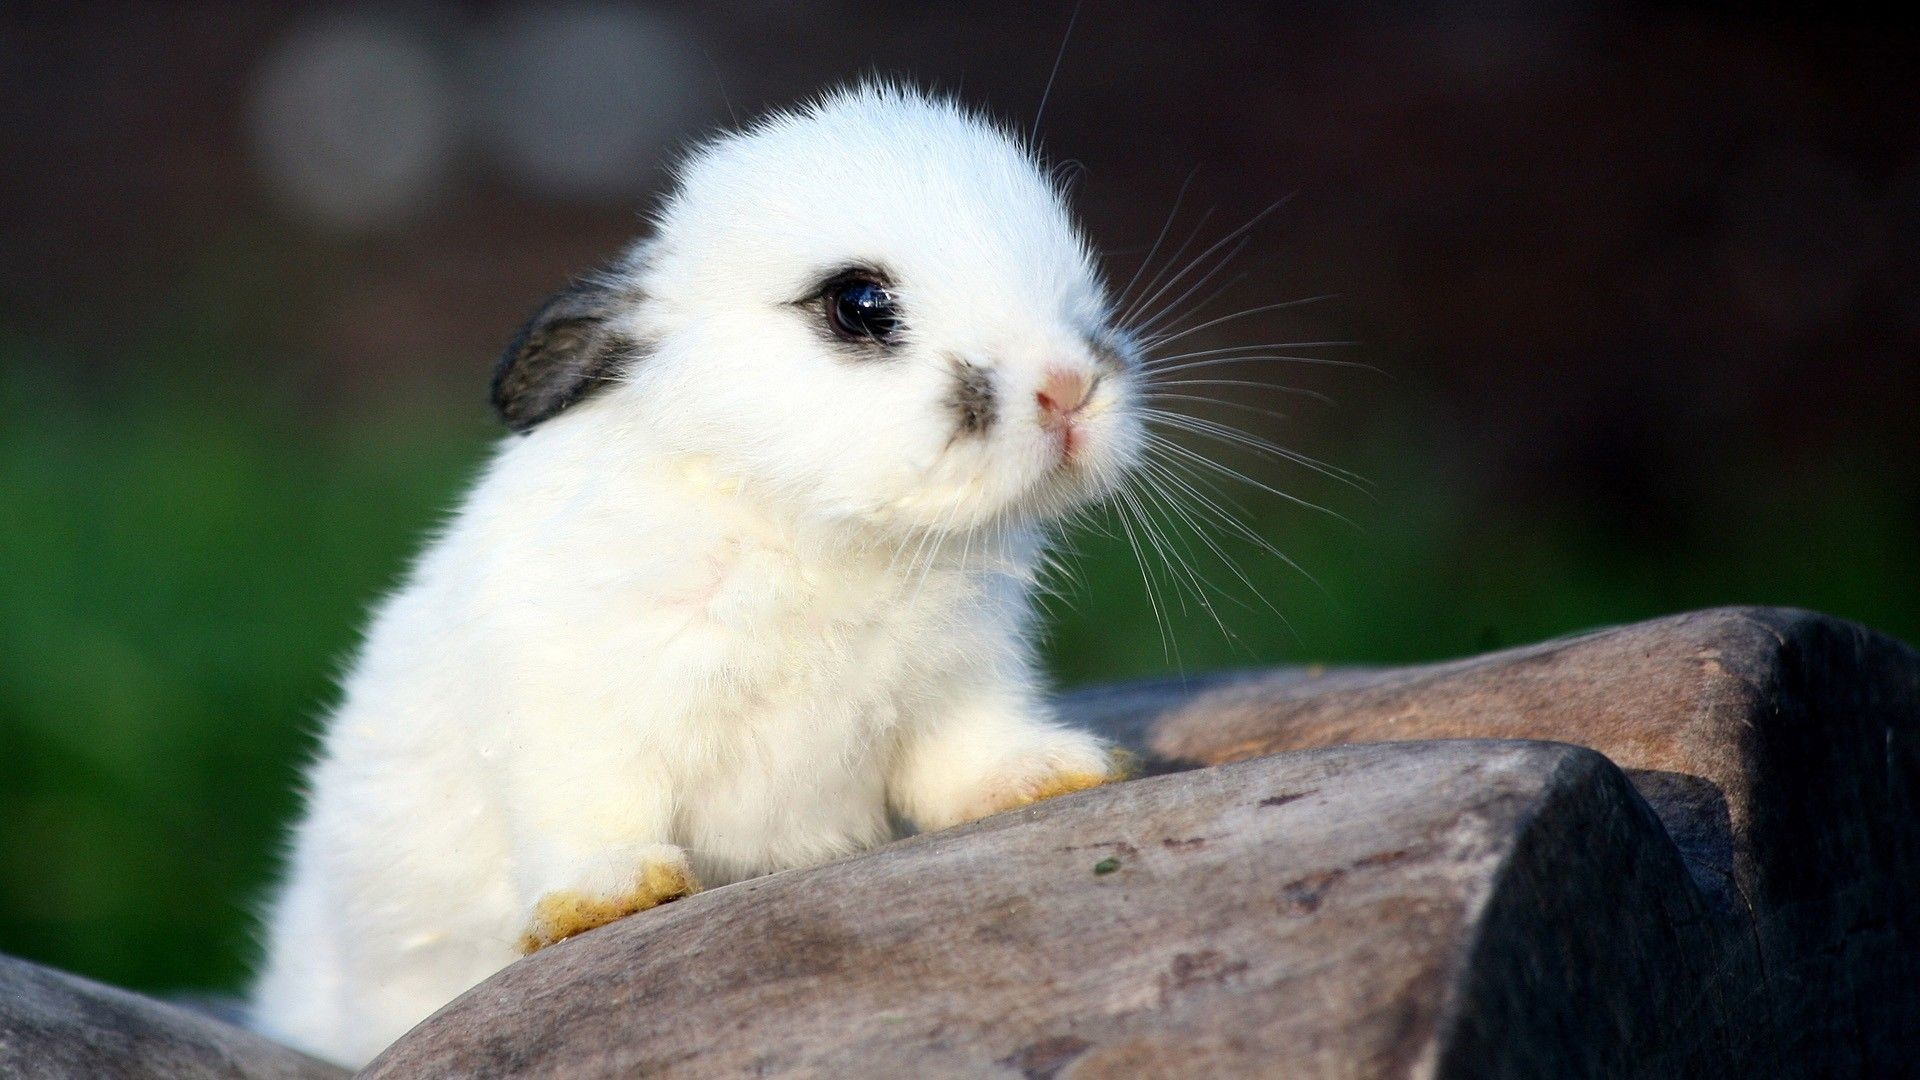 baby animals cute wallpapers adorable animal 4k